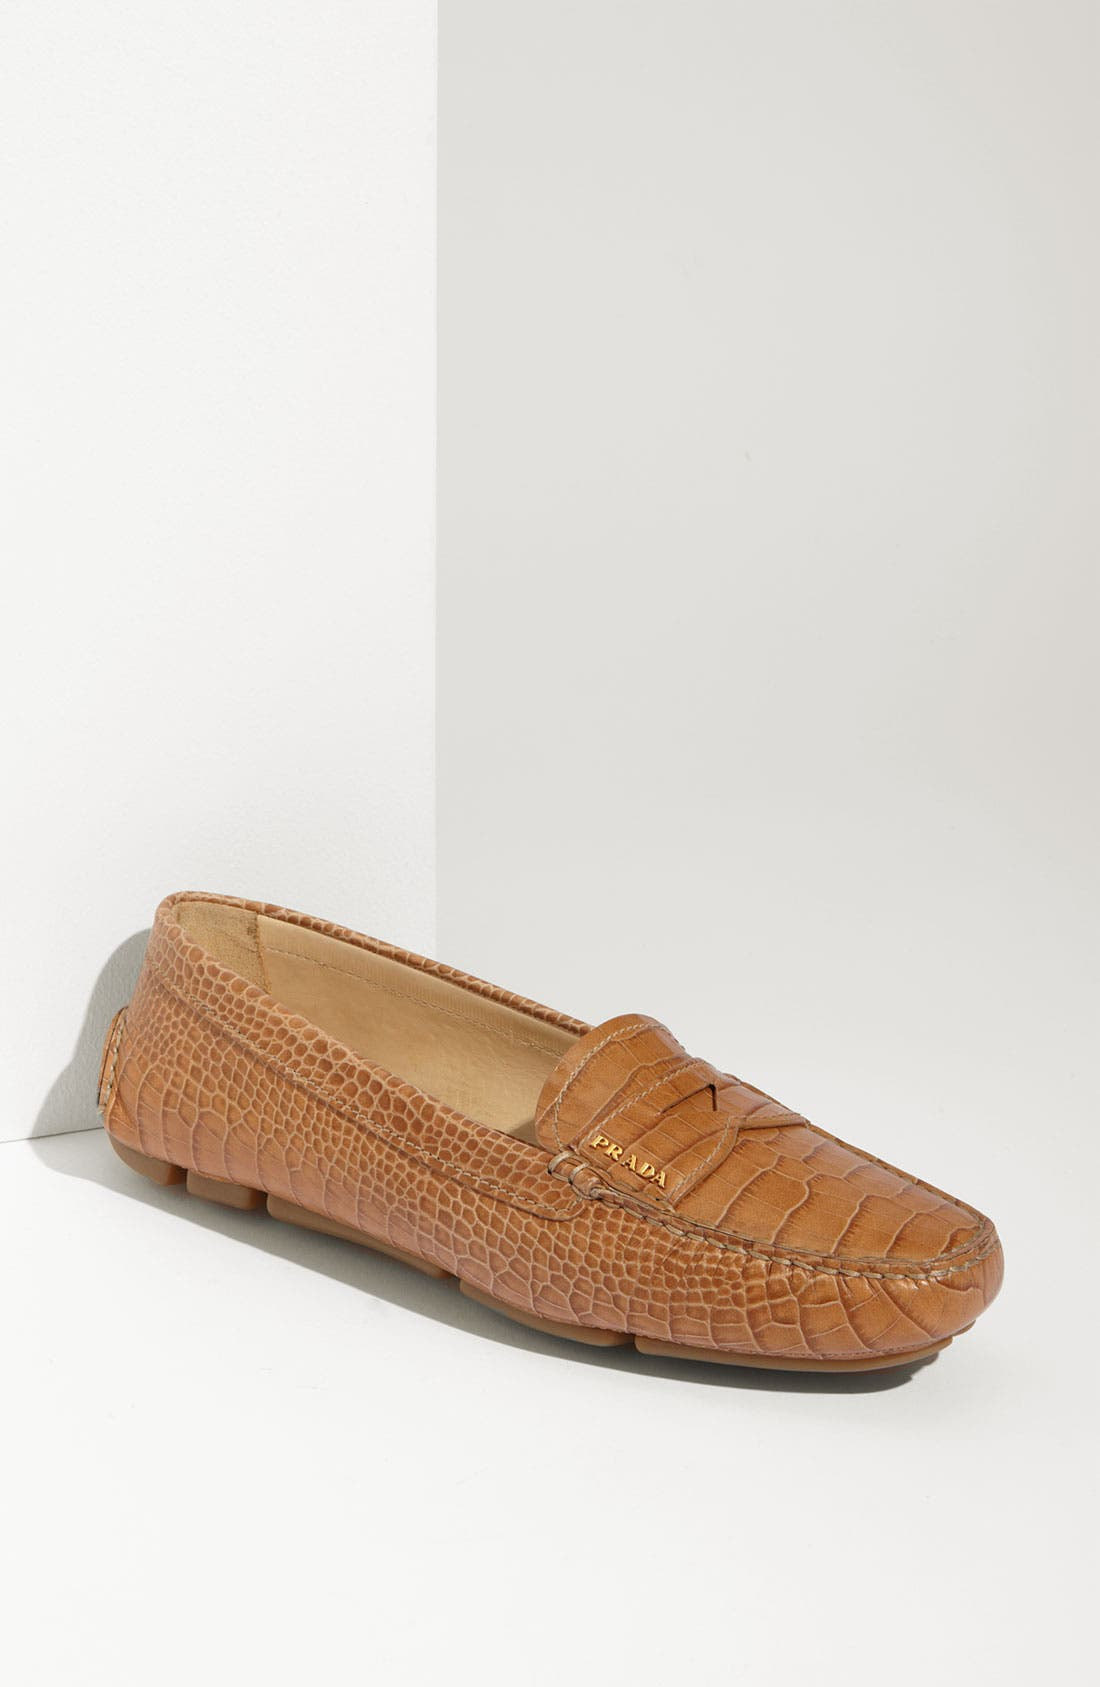 Alternate Image 1 Selected - Prada Snake Stamped Leather Driving Moccasin